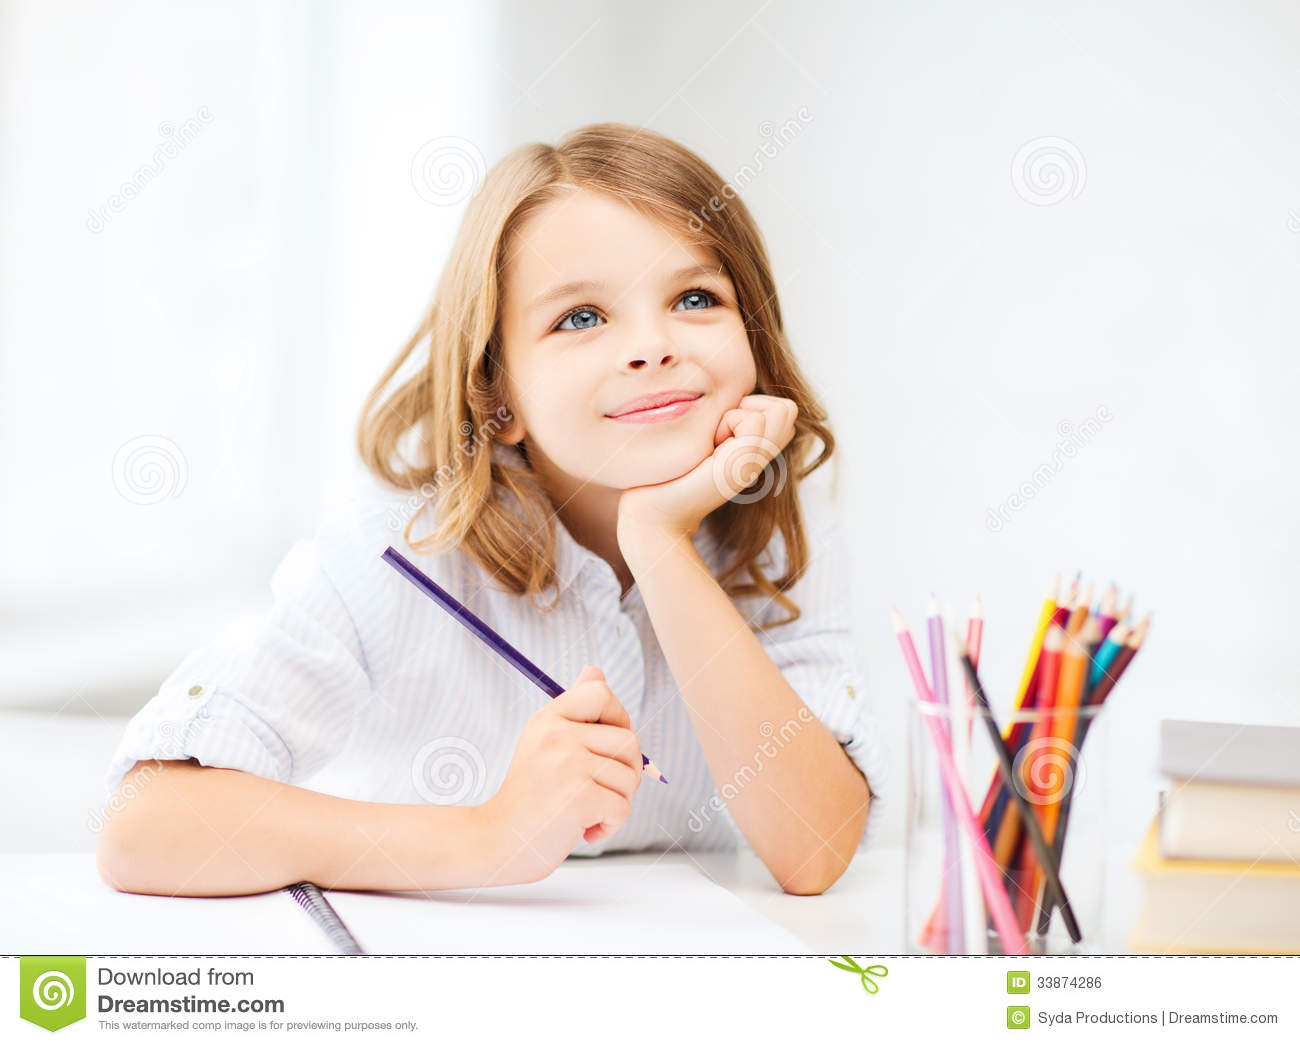 Girl drawing with pencils at school